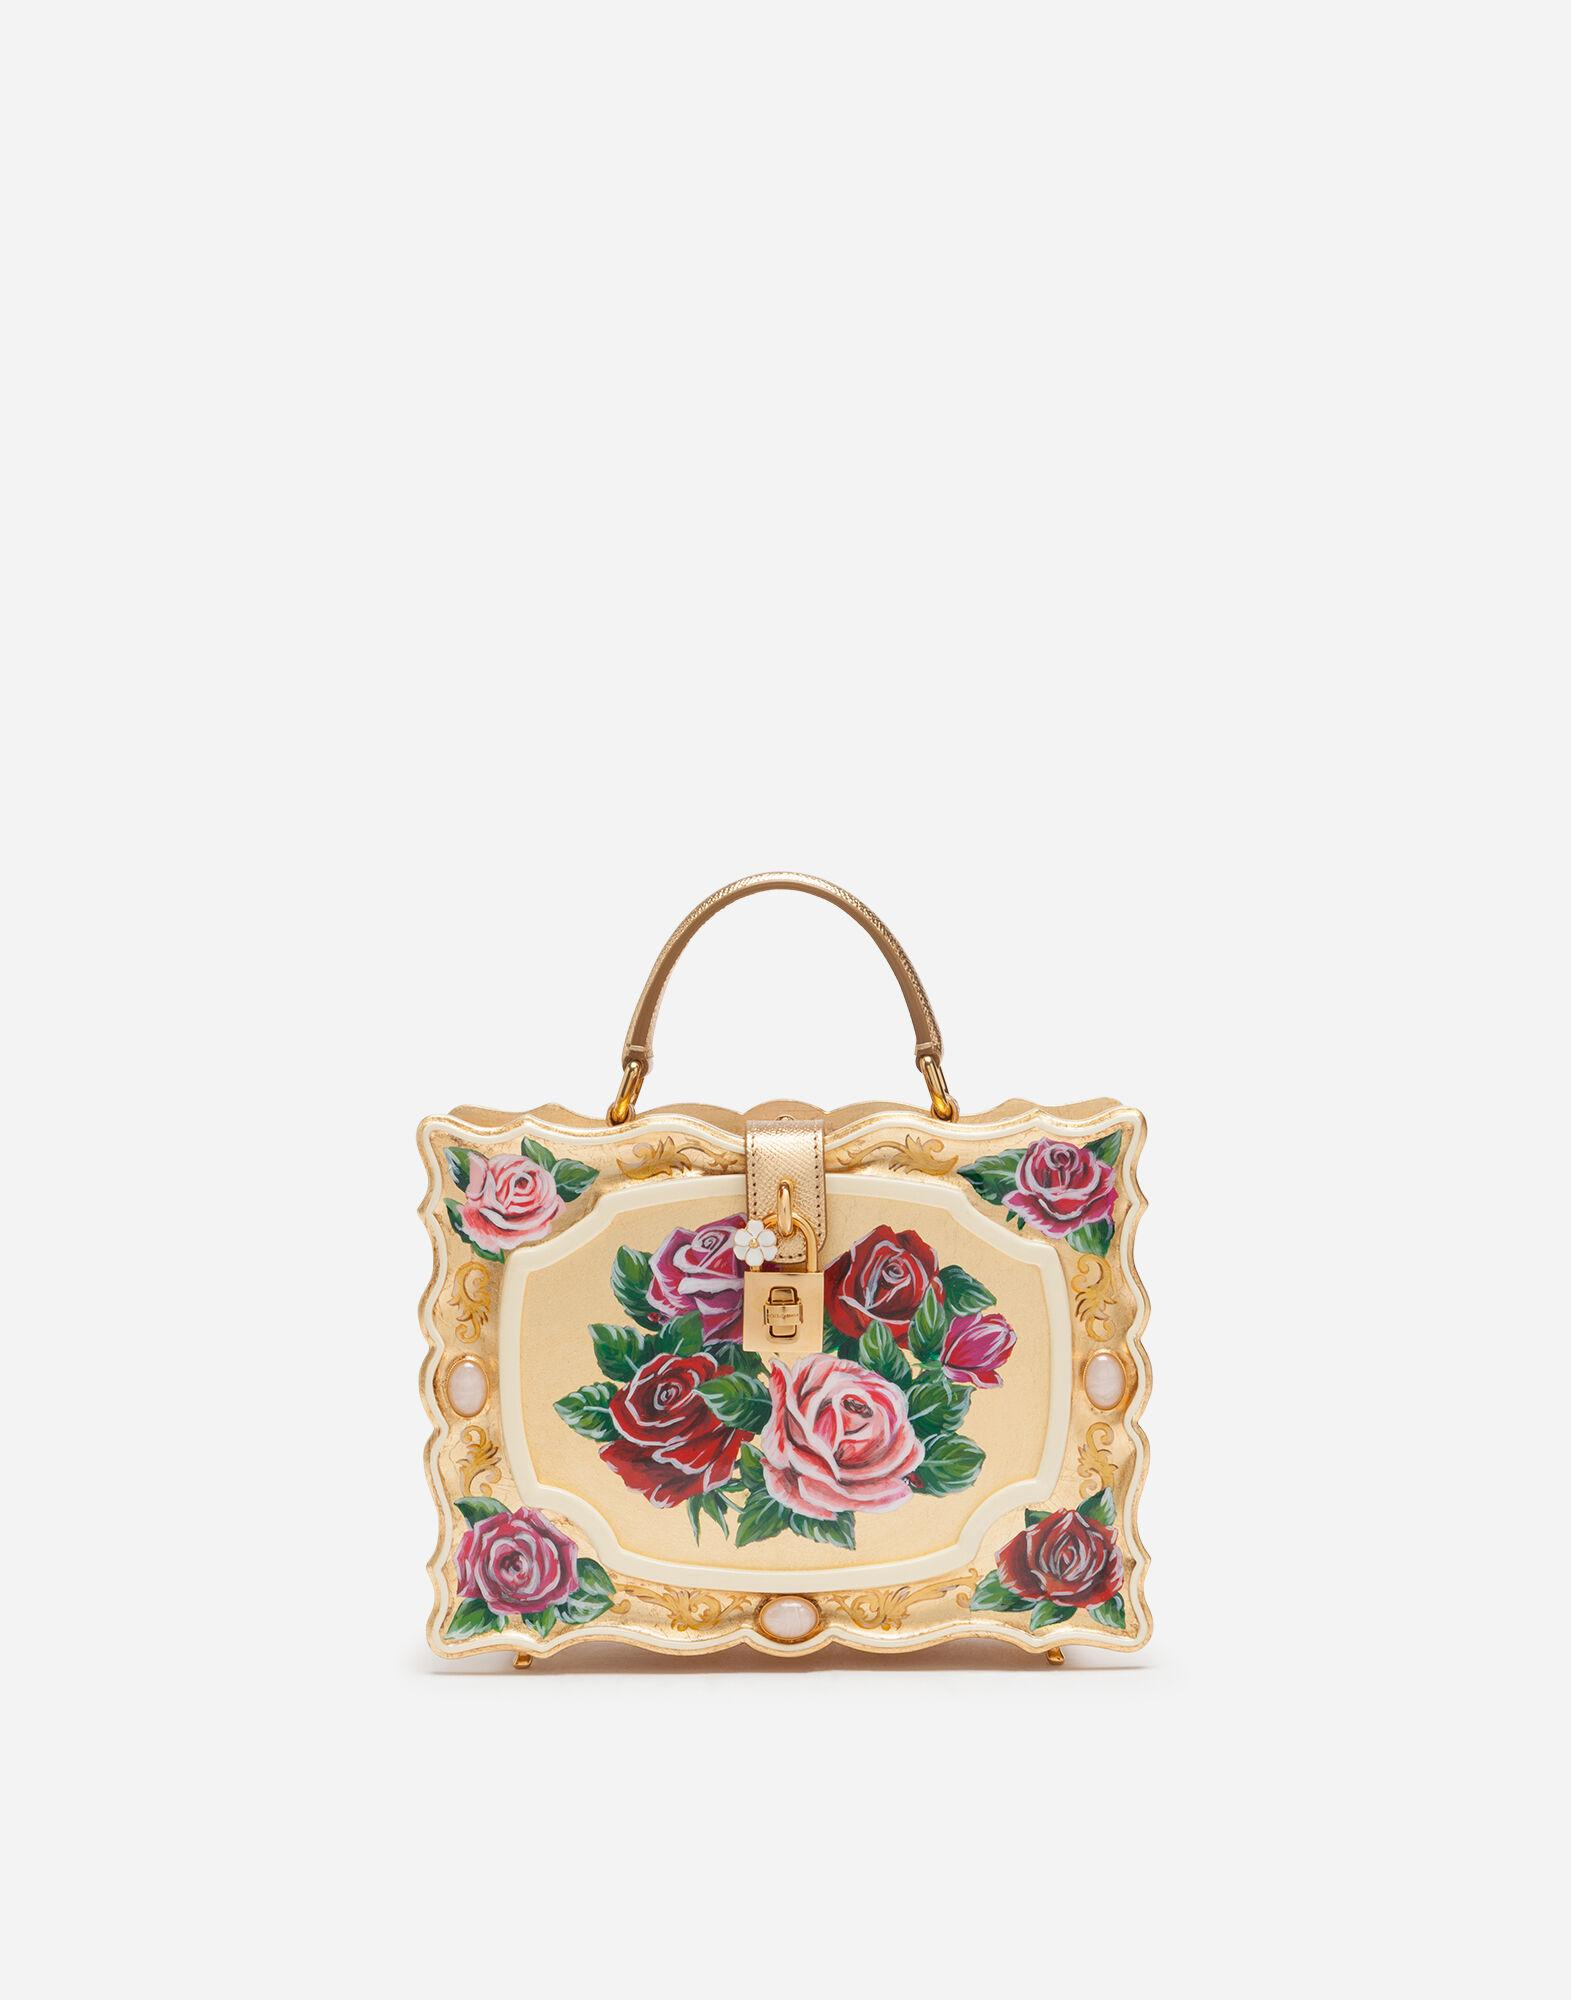 Dolce Box bag in golden hand-painted wood